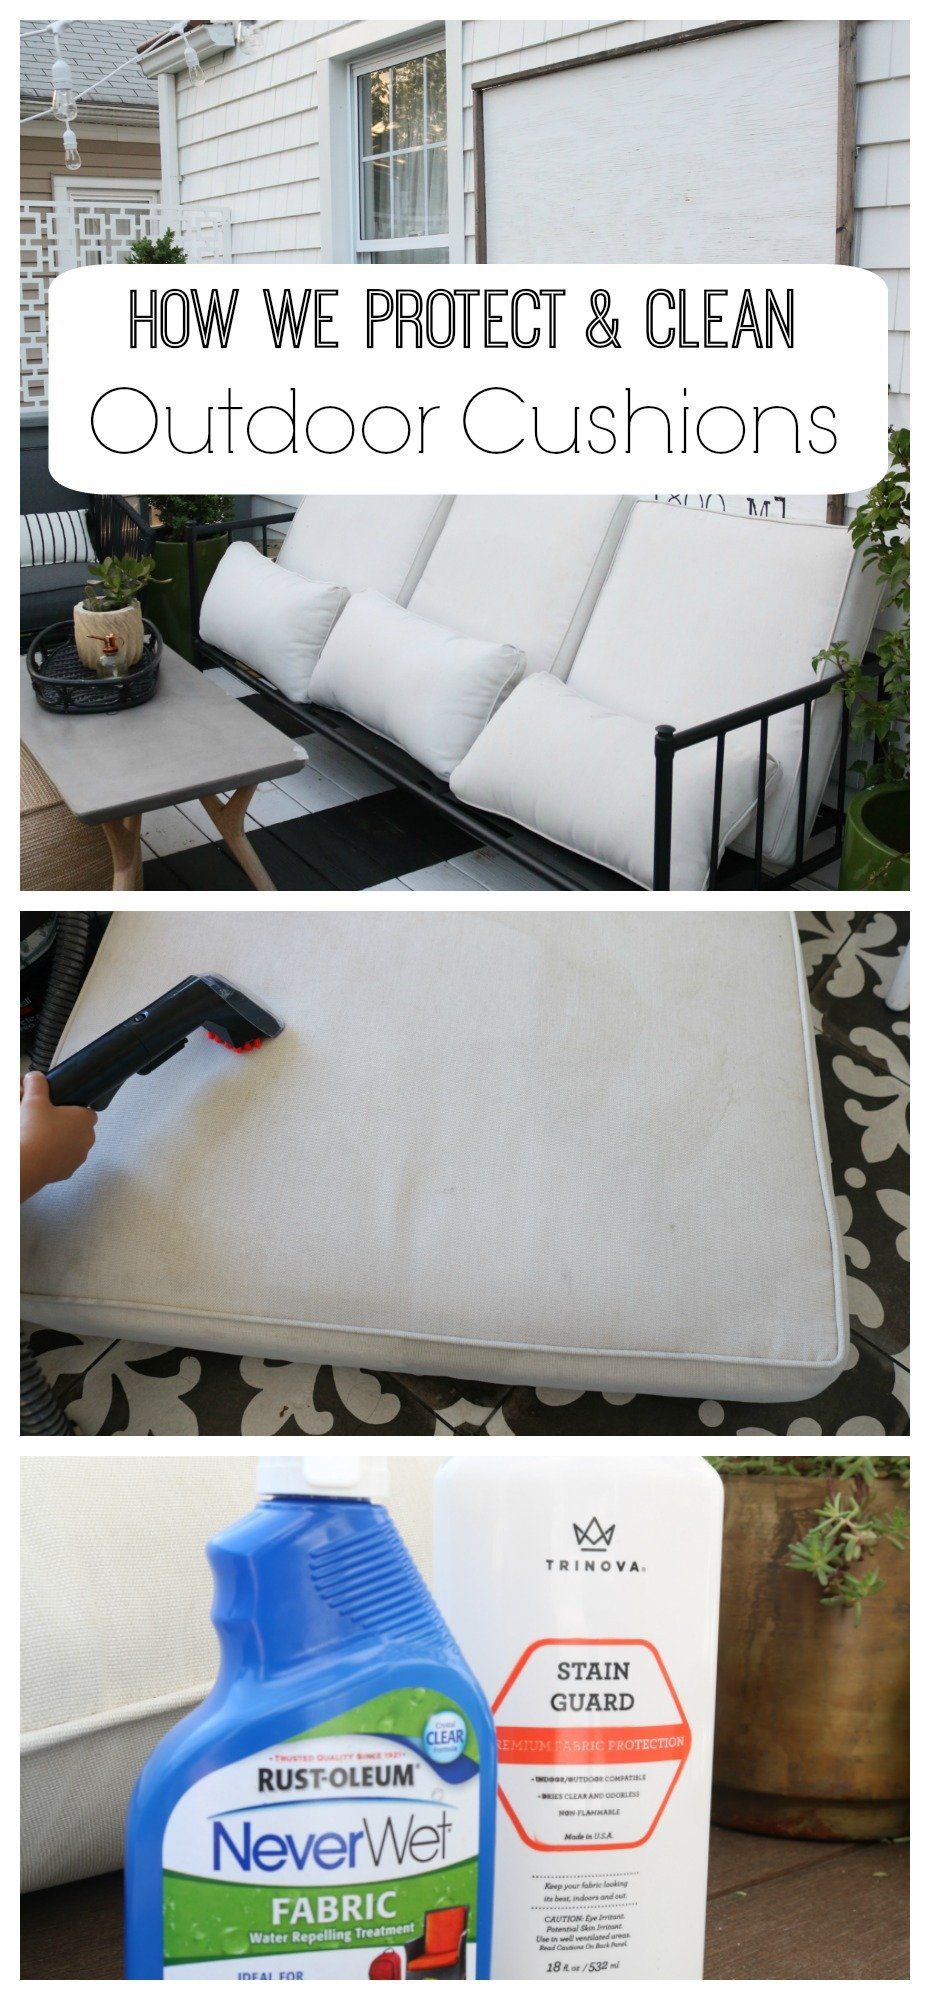 How We Clean Our Outdoor Cushions Indoor Cushions And Rugs Cleaning Outdoor Cushions Outdoor Cushions Patio Furniture Cushions